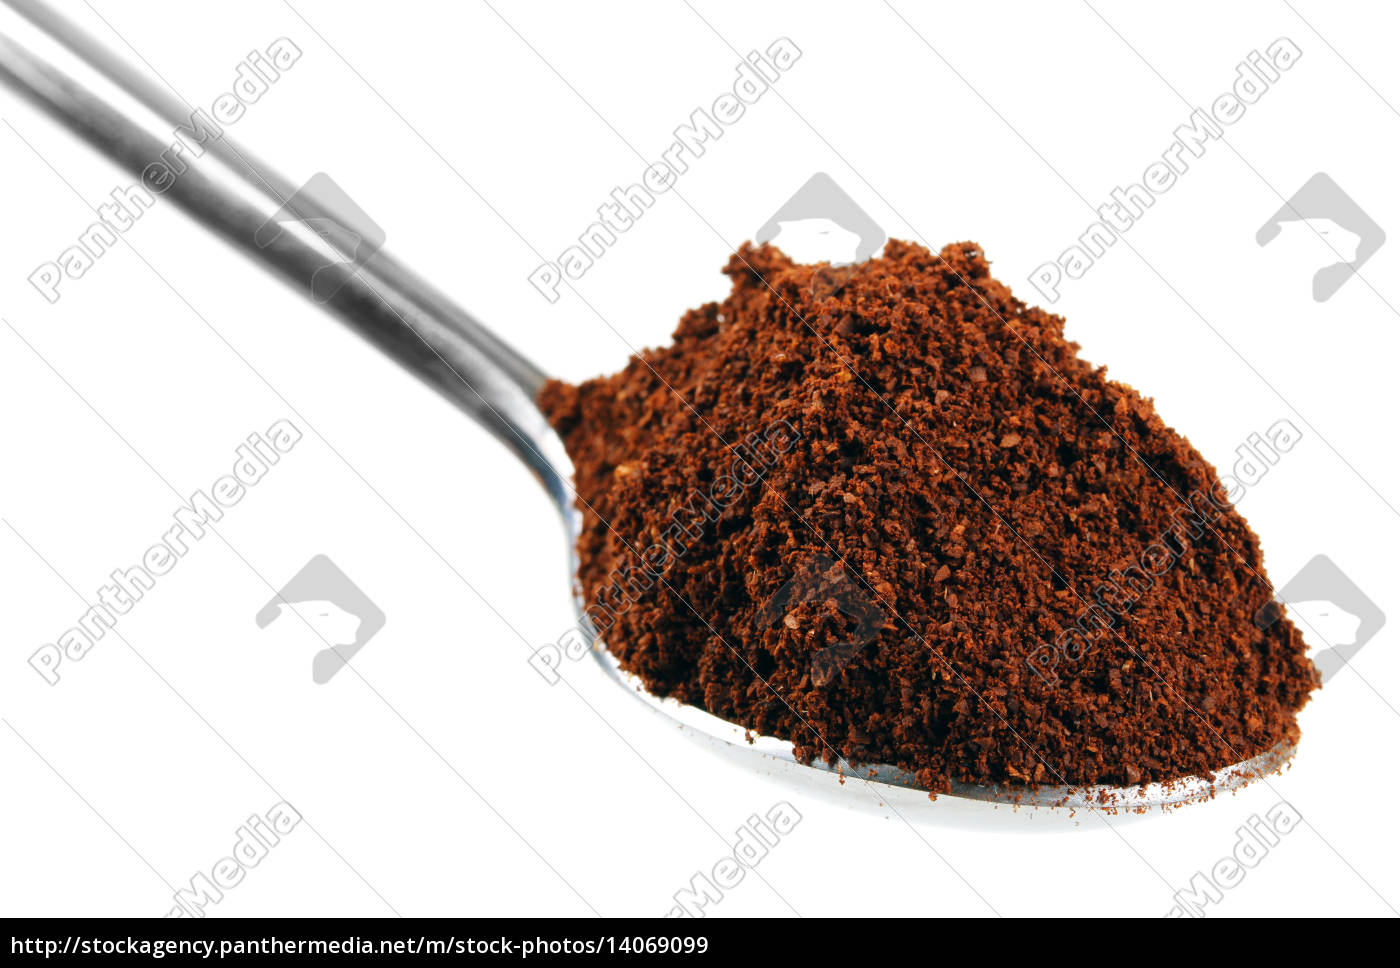 spoon, full, with, coffee, isolated, on - 14069099